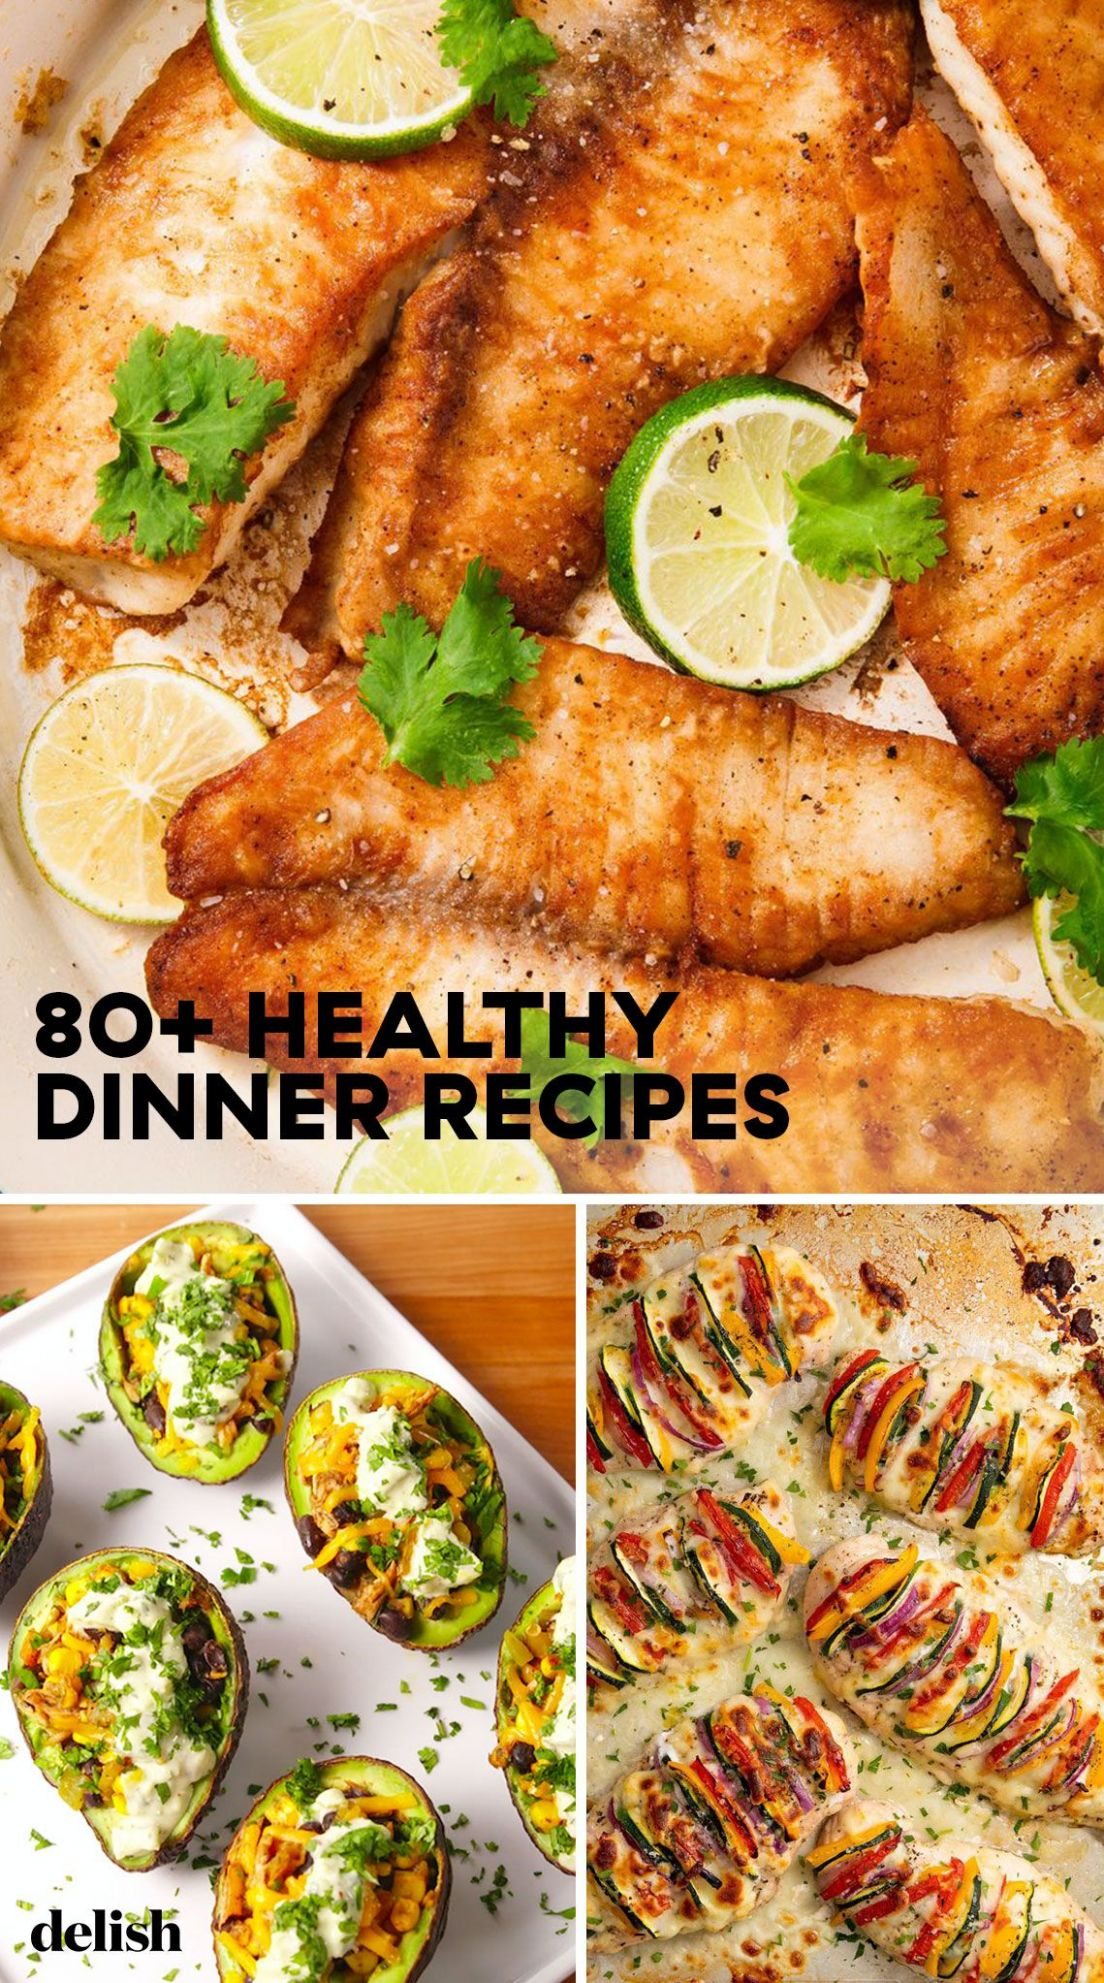 11+ Easy Healthy Dinner Ideas - Best Recipes for Healthy Dinners